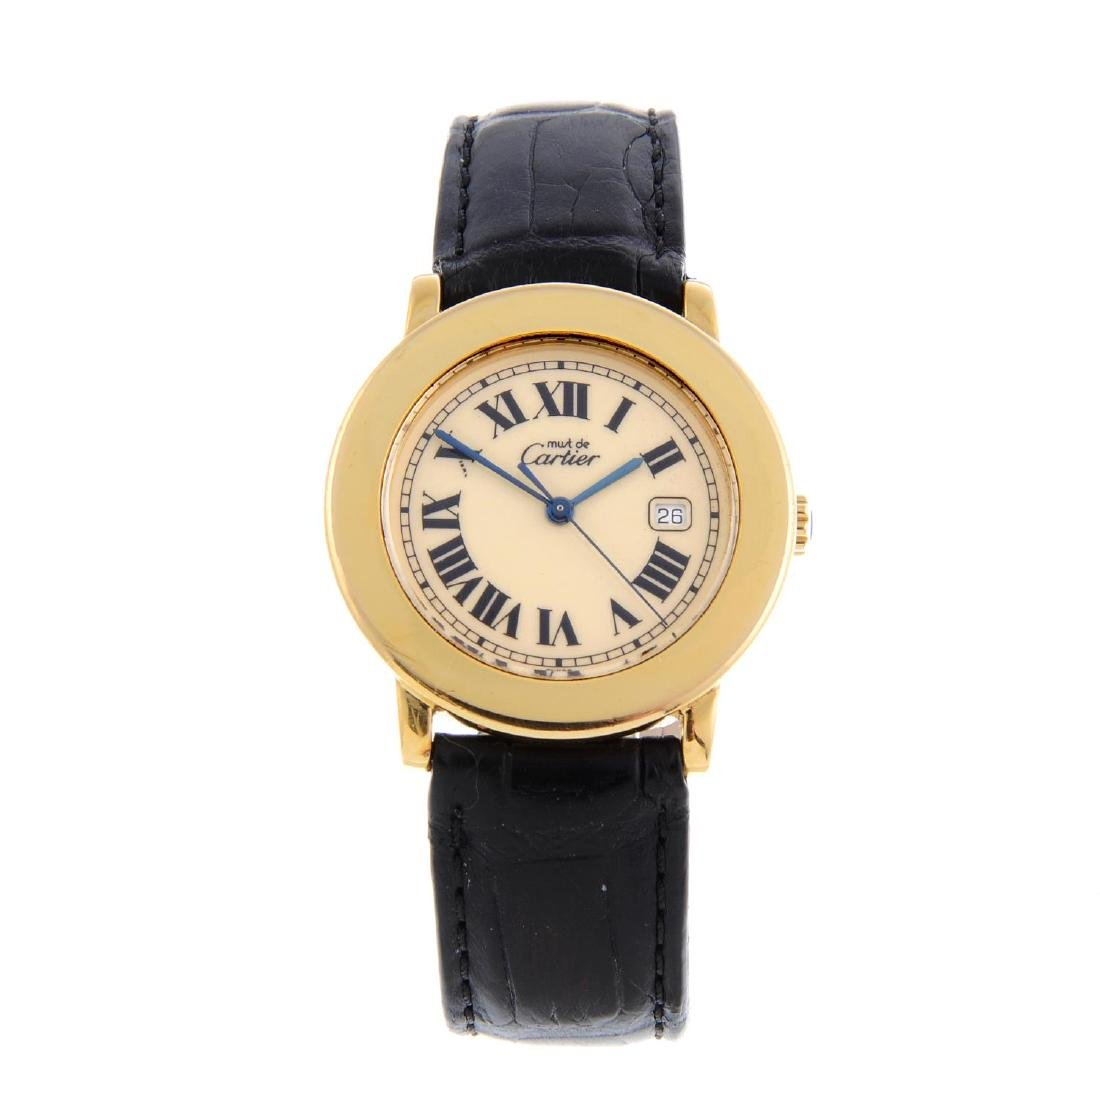 CARTIER - a Must de Cartier Ronde wrist watch. Gold